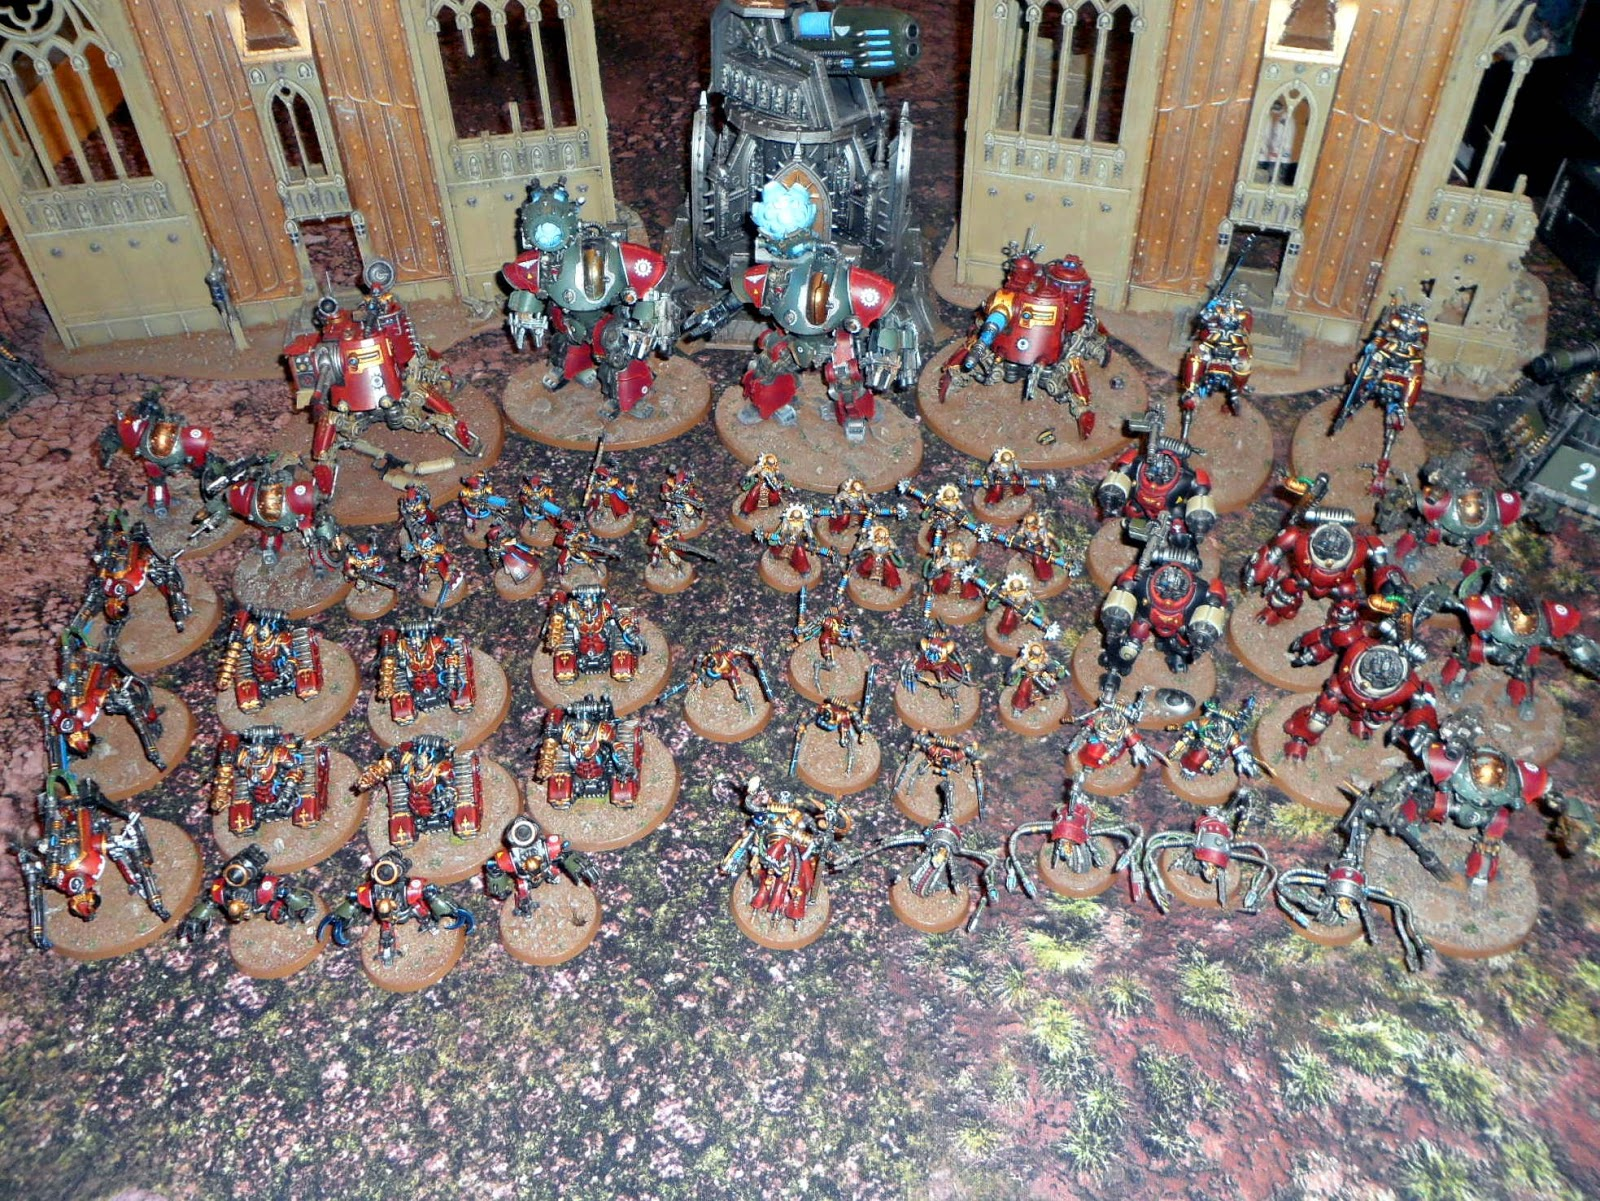 Adeptus mechanicus army rules for dating. Dating for one night.